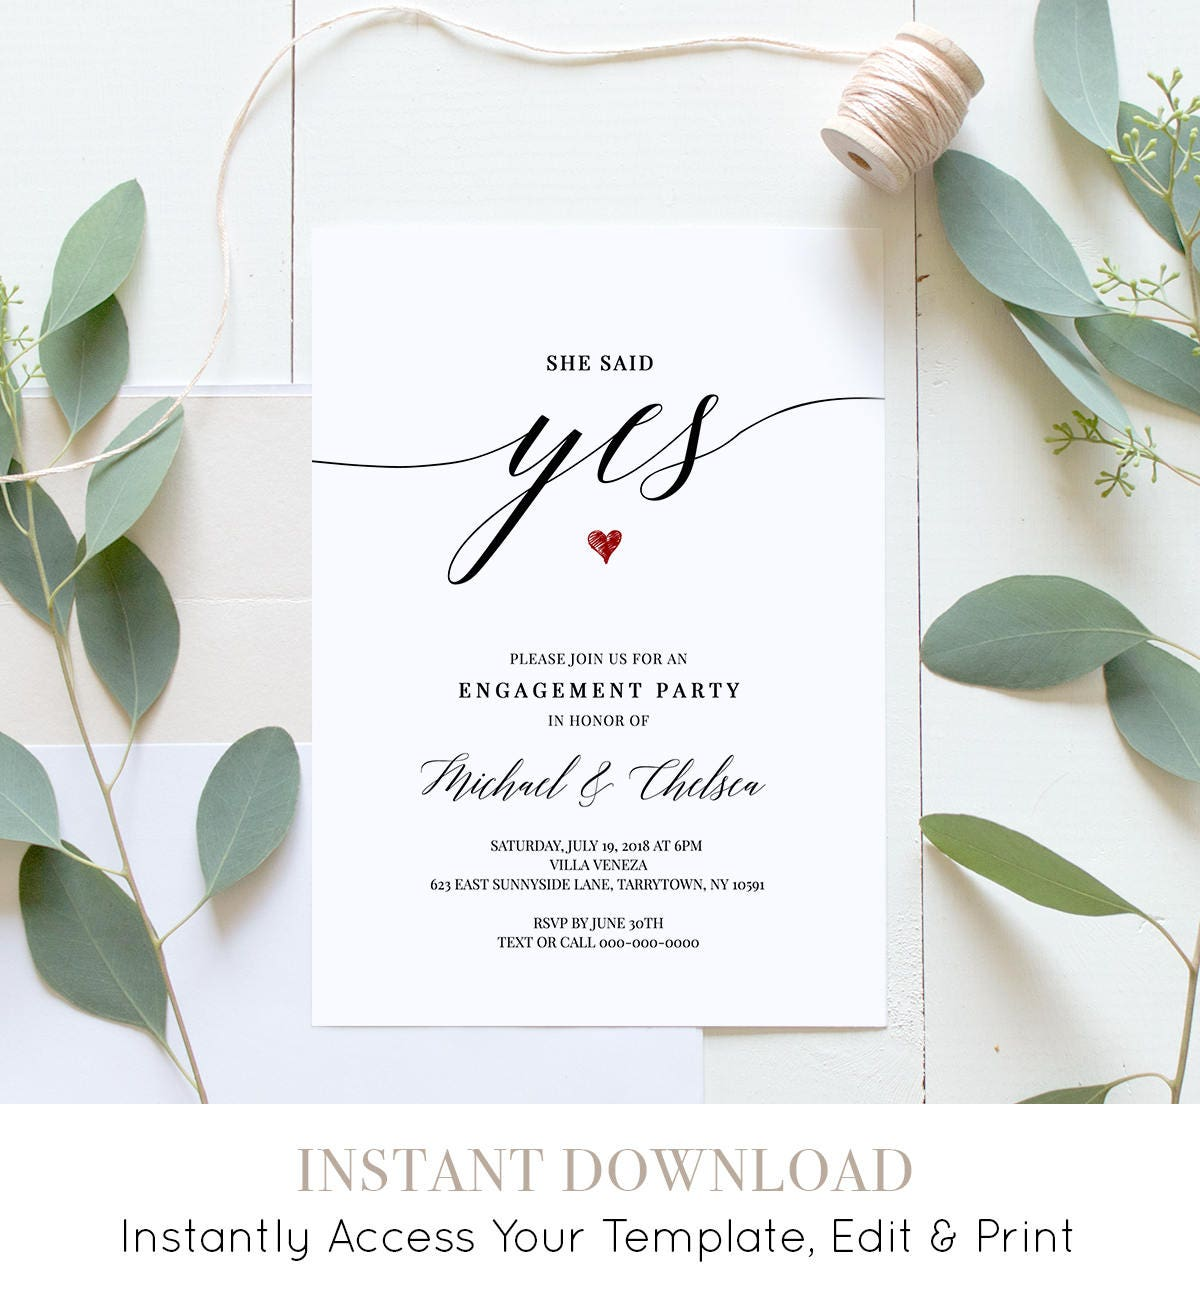 Party invitation template who to invite to engagement party.